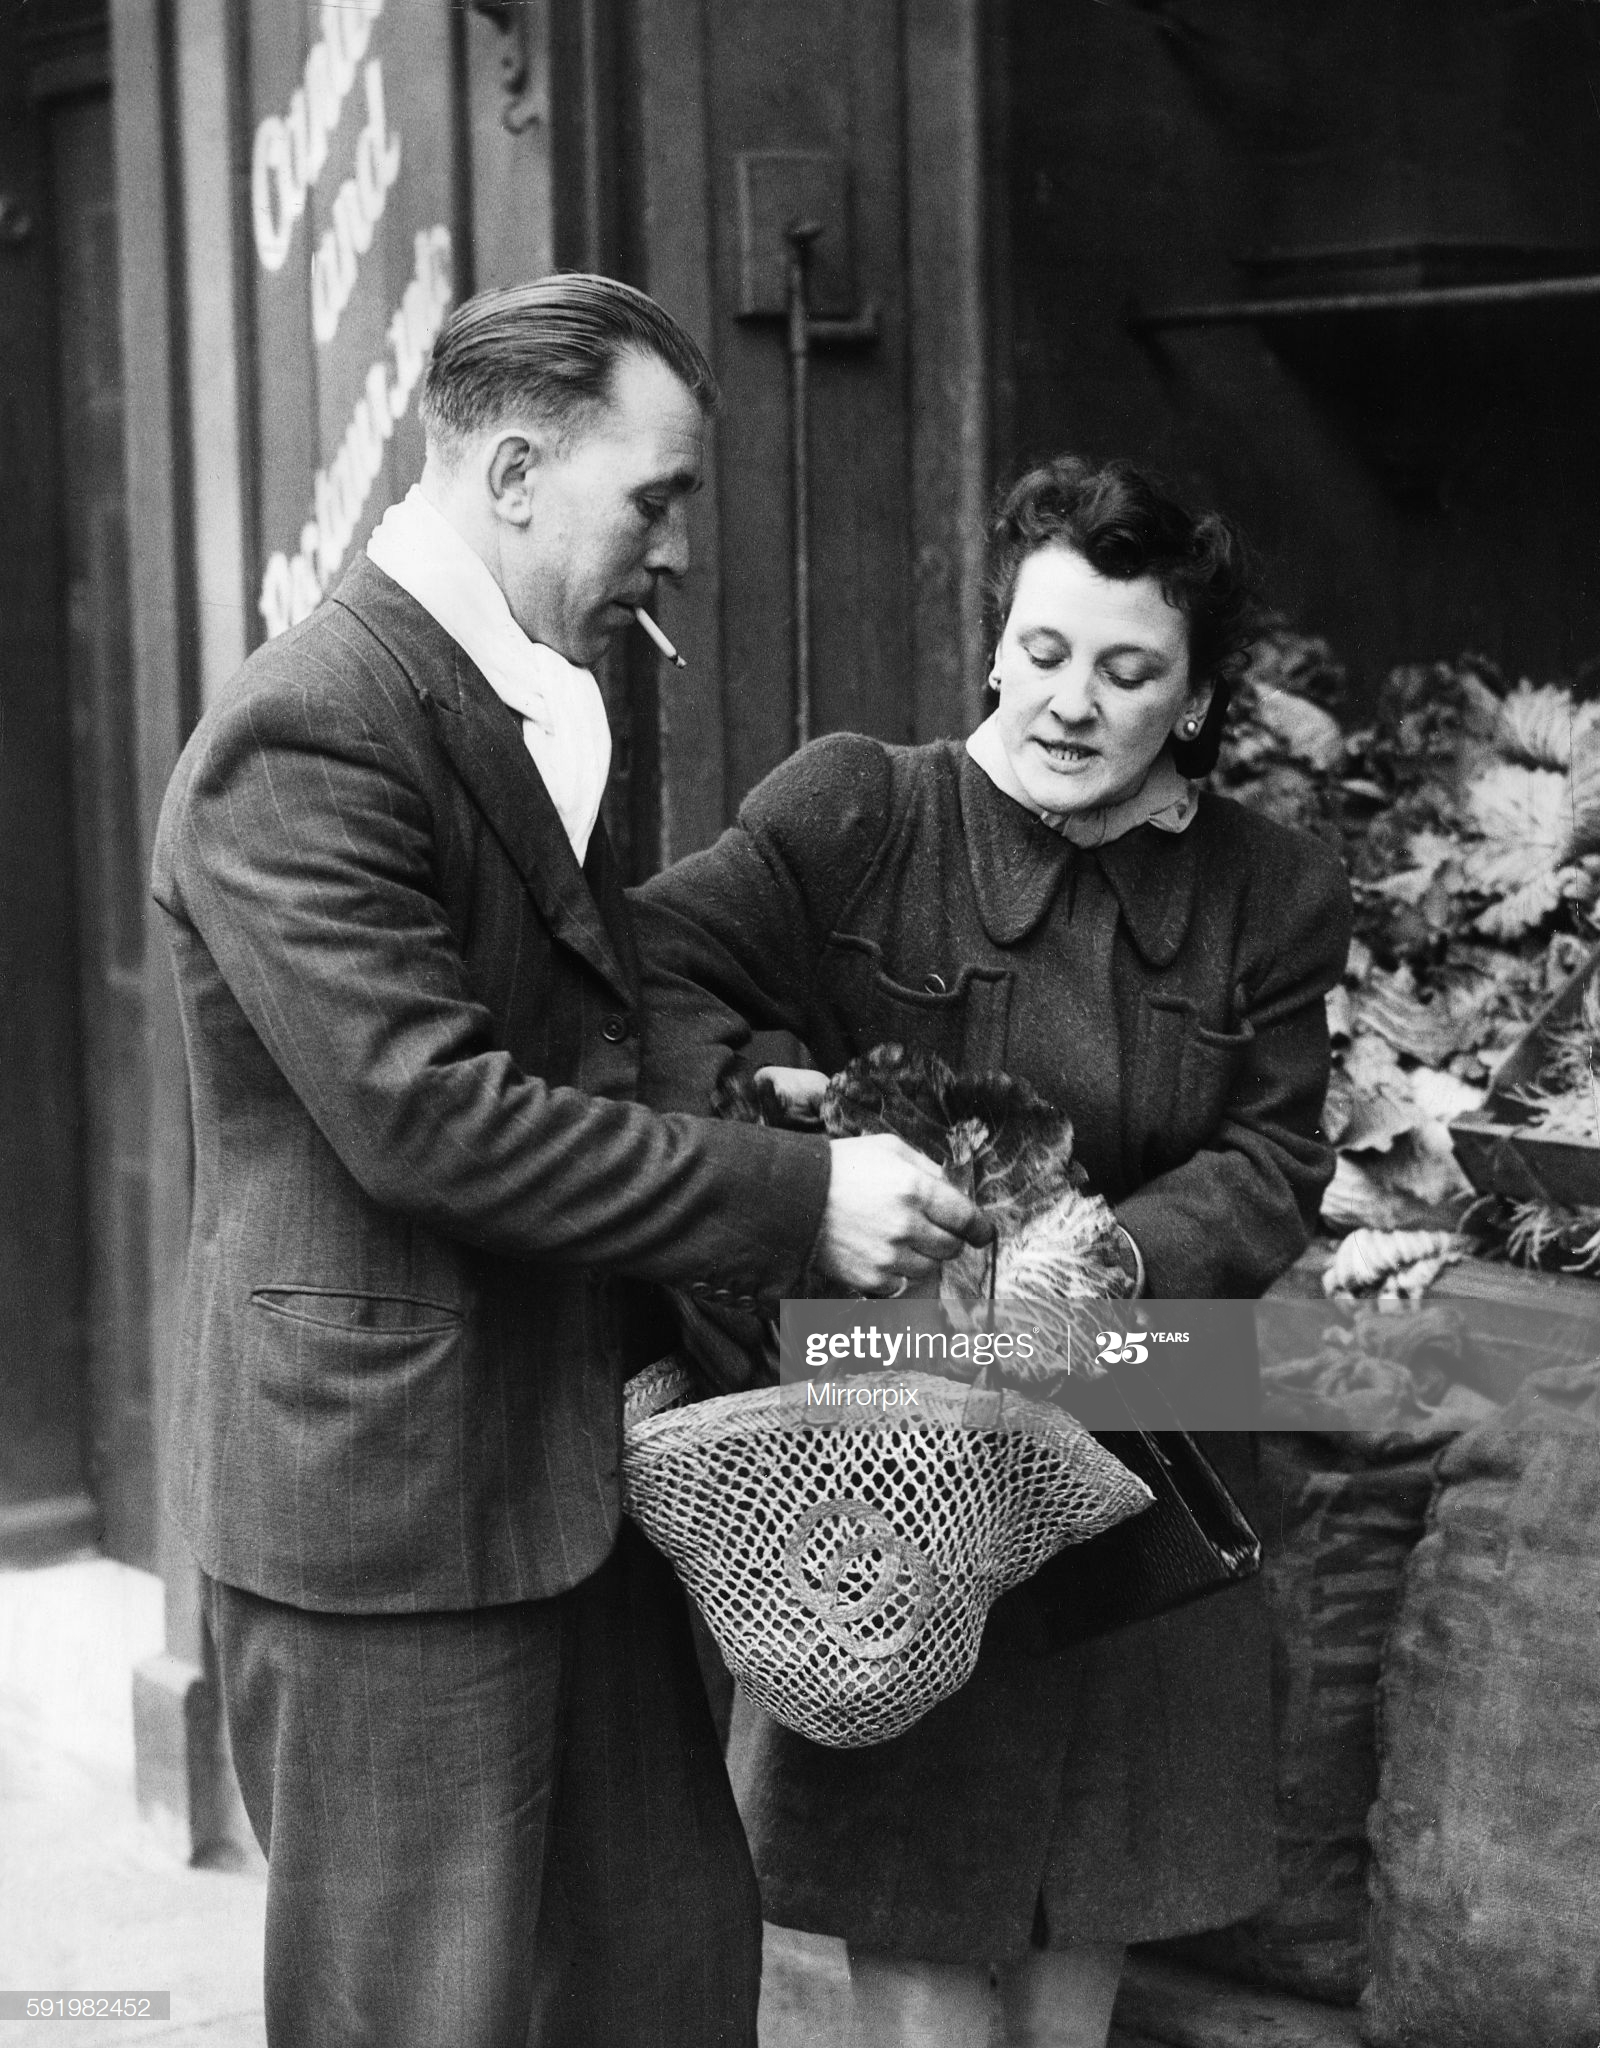 Private Ted Saunders of the 2nd Army out shopping with his wife Margaret in Bermondsey while on leave during the Second World War. 7th January 1945.  X.png